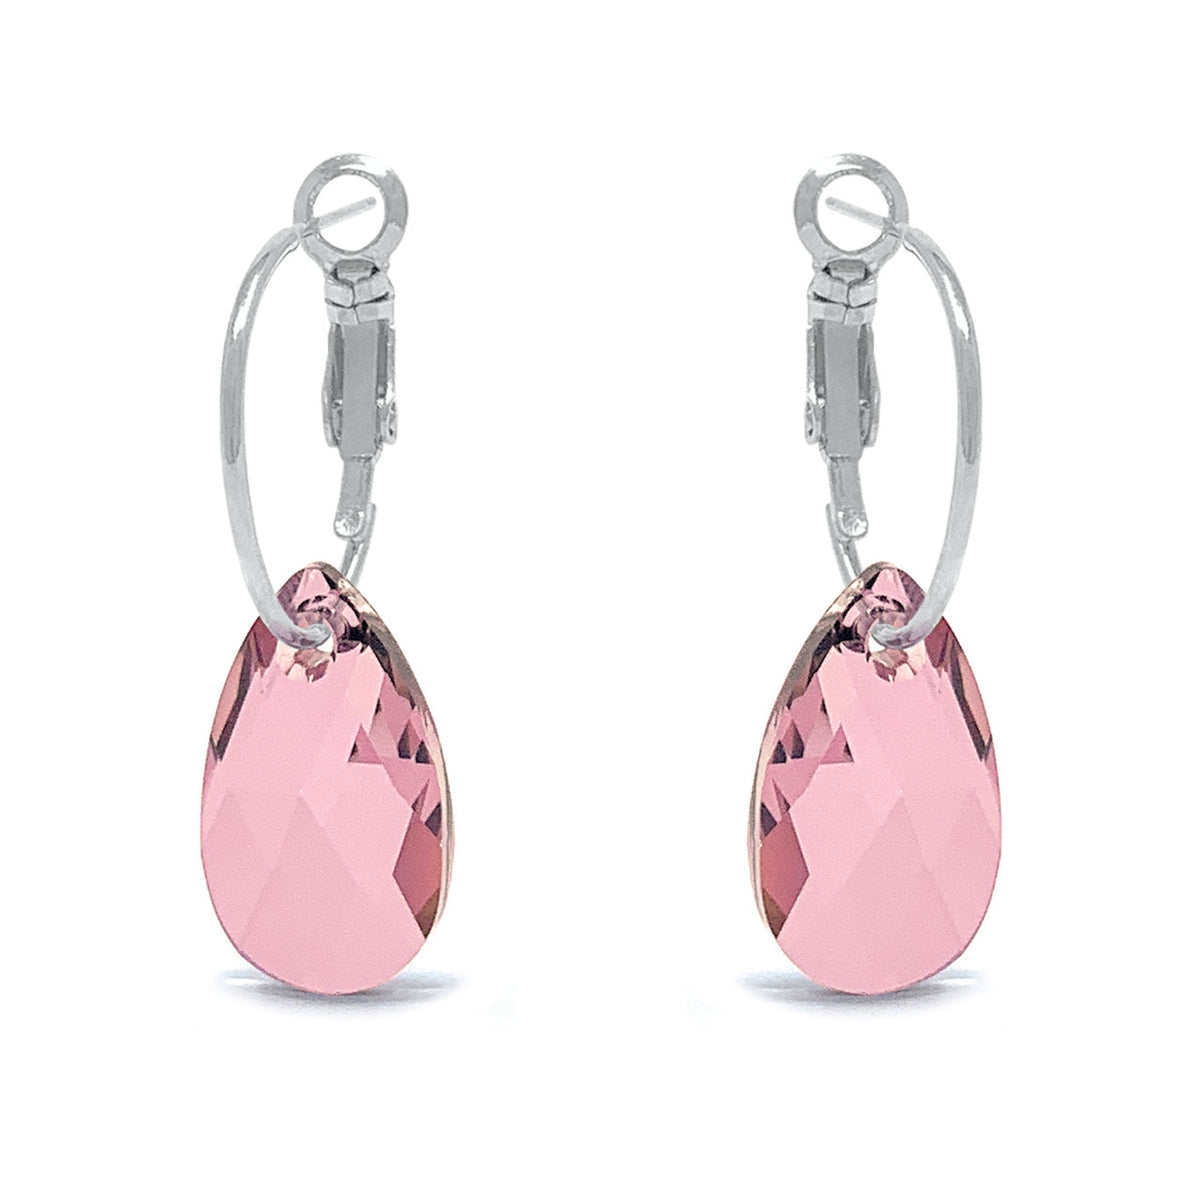 Aurora Small Drop Earrings with Beige Antique Pink Pear Crystals from Swarovski Silver Toned Rhodium Plated - Ed Heart